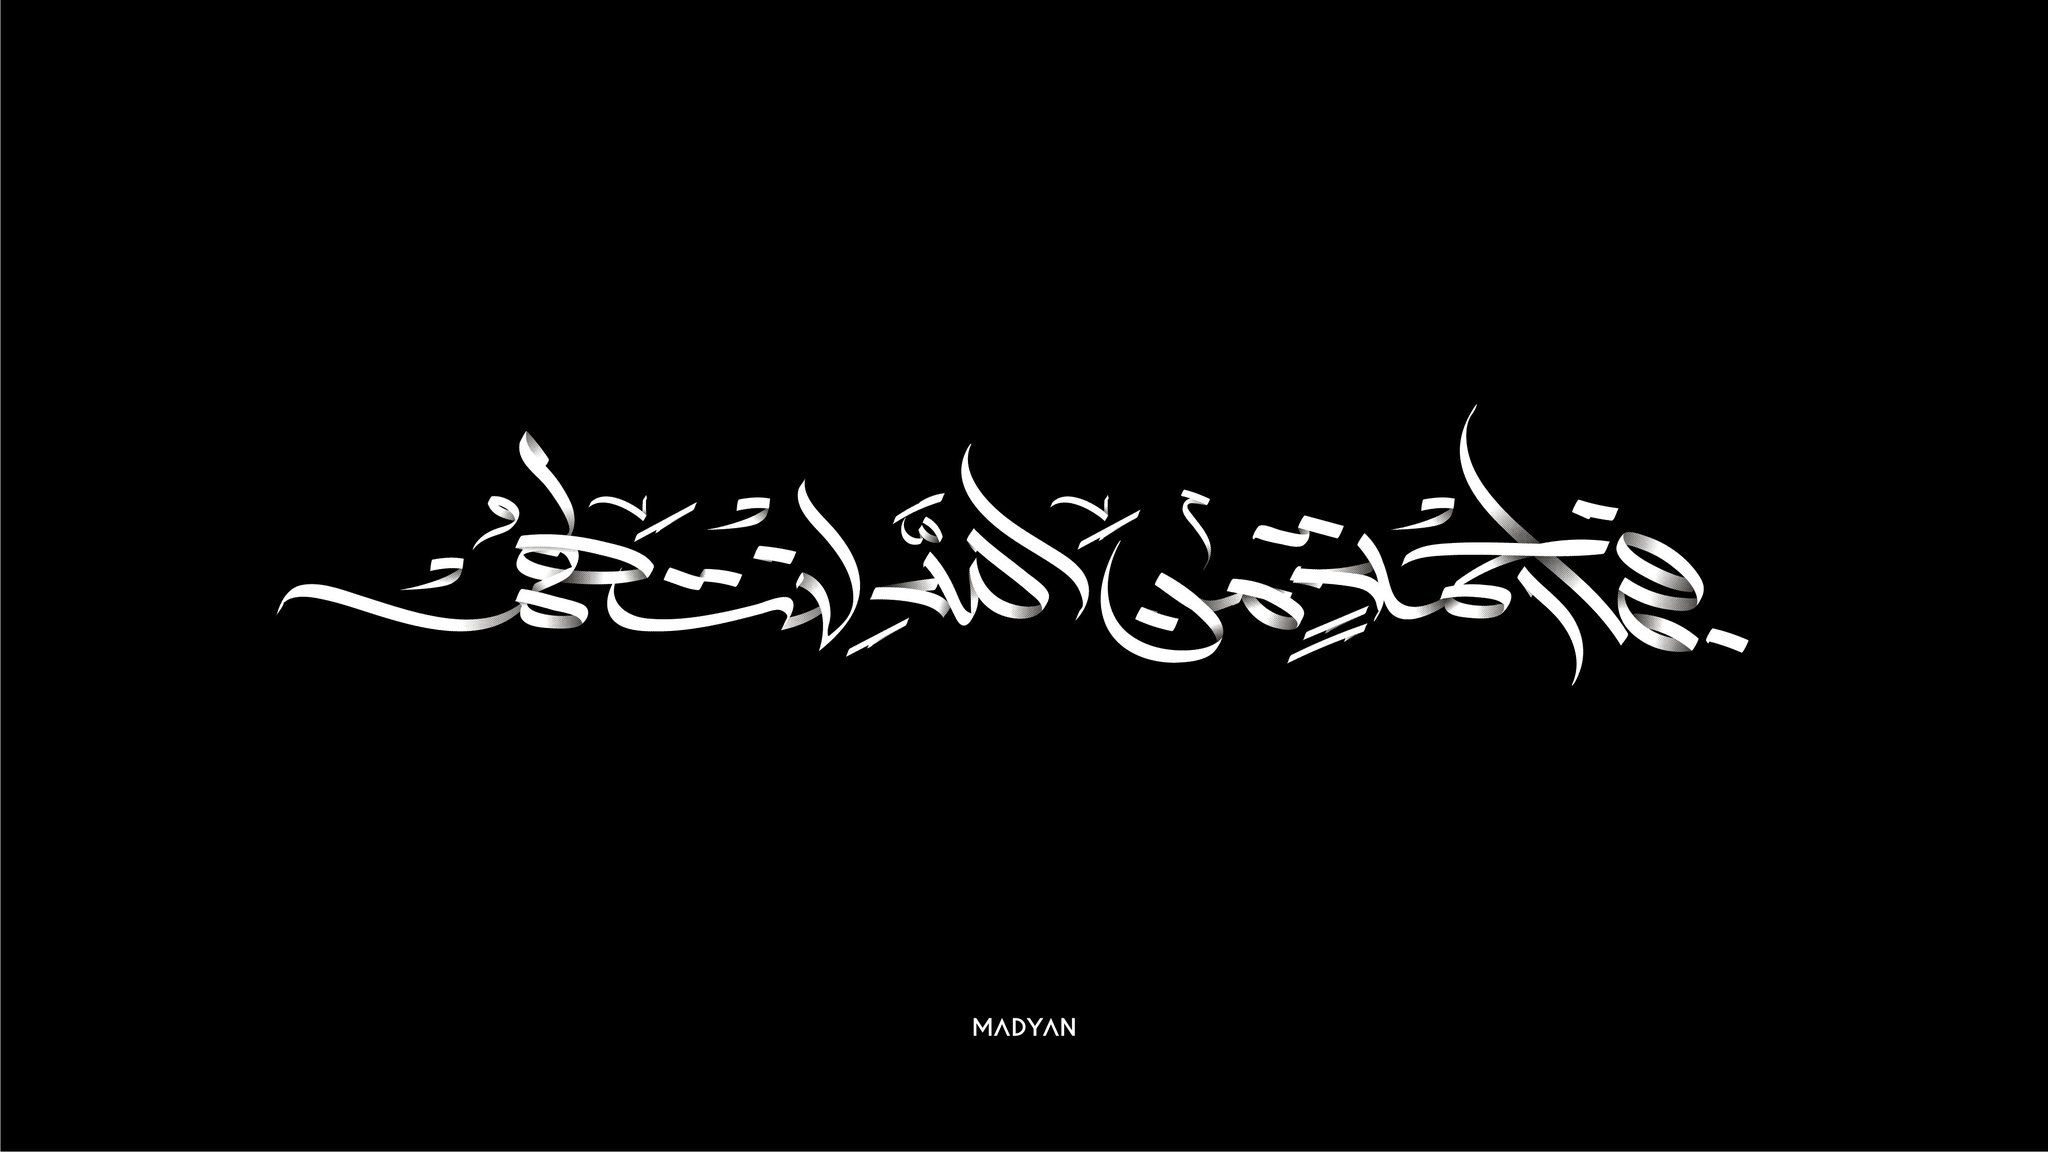 Ahmed Madyan On Twitter Calligraphy Art Quotes Calligraphy Quotes Word Drawings